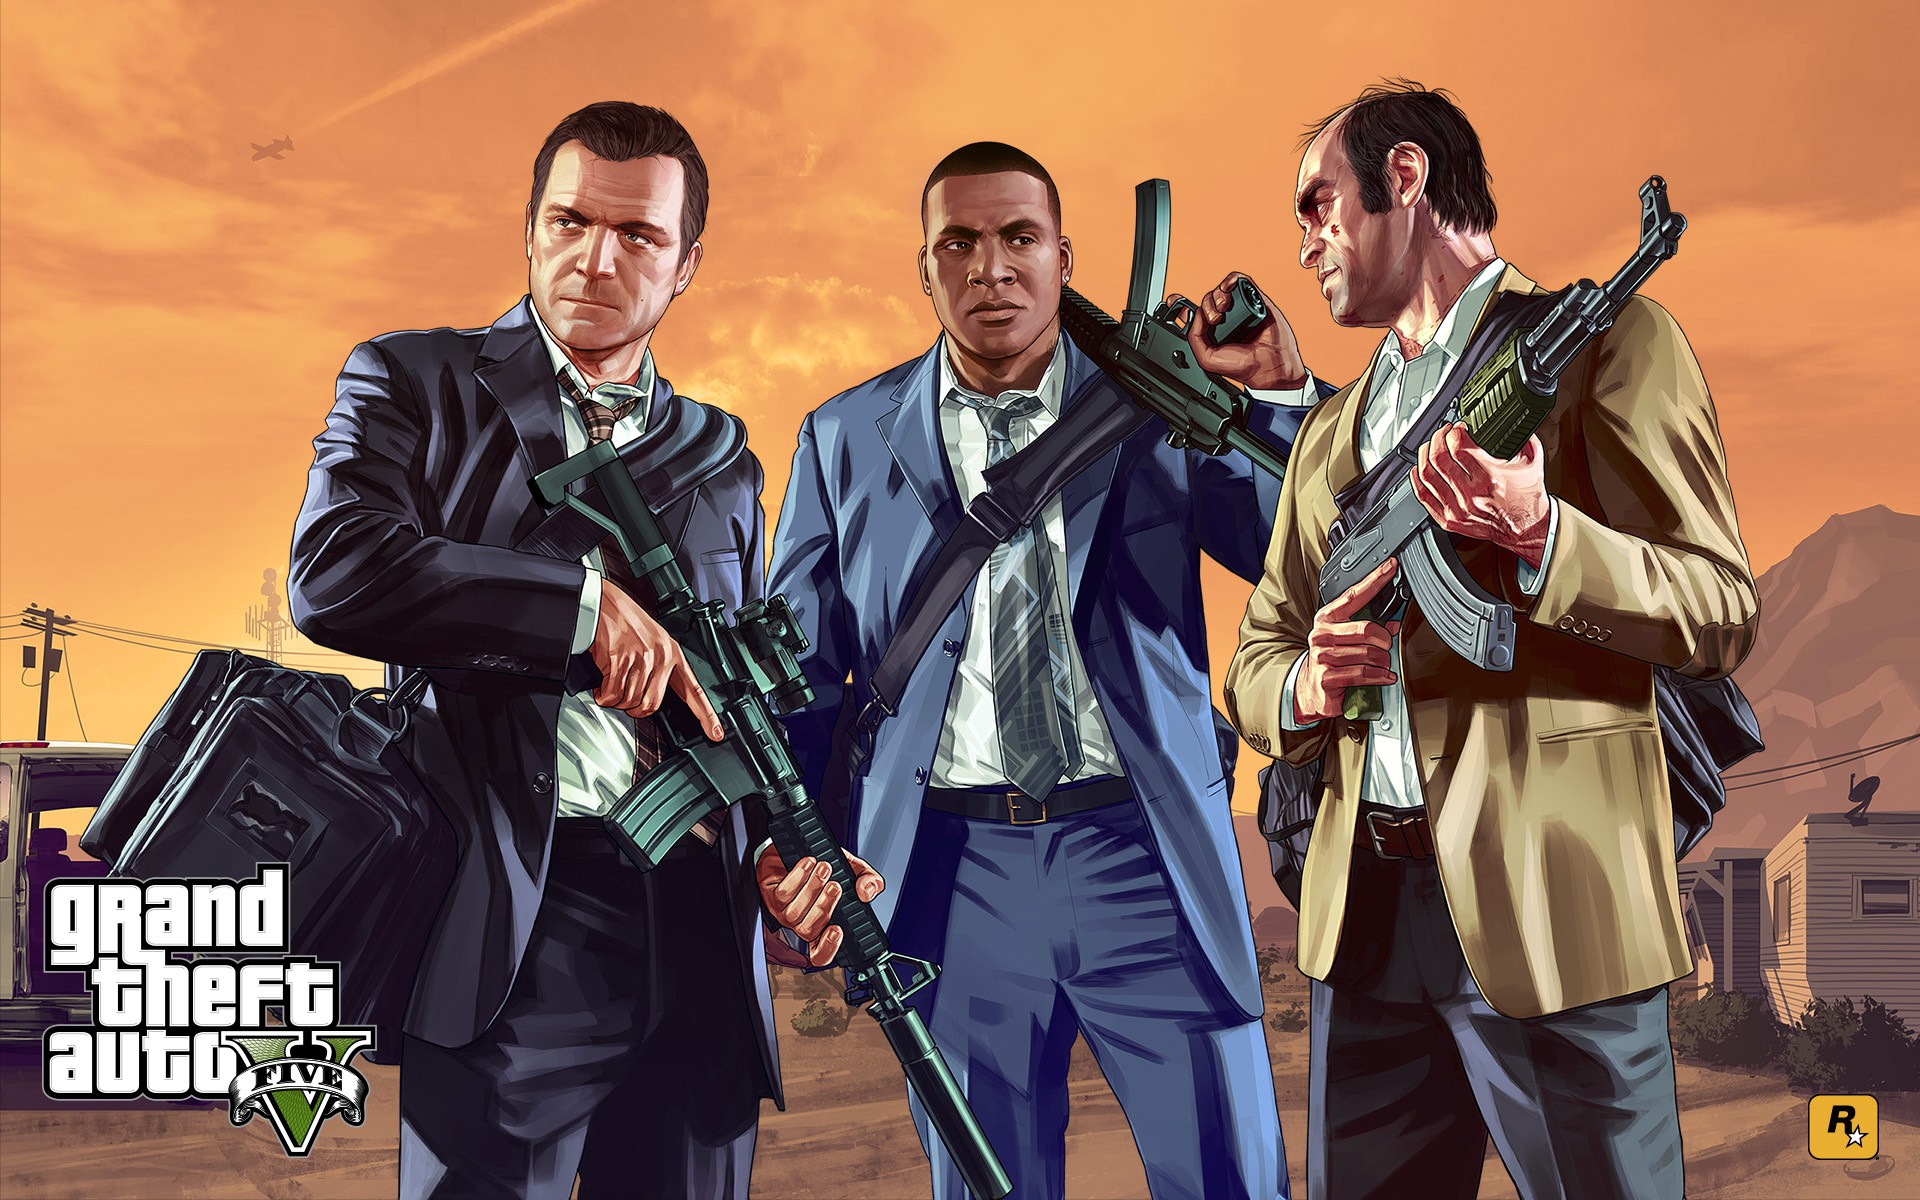 gta5-artwork-55-hd.jpg